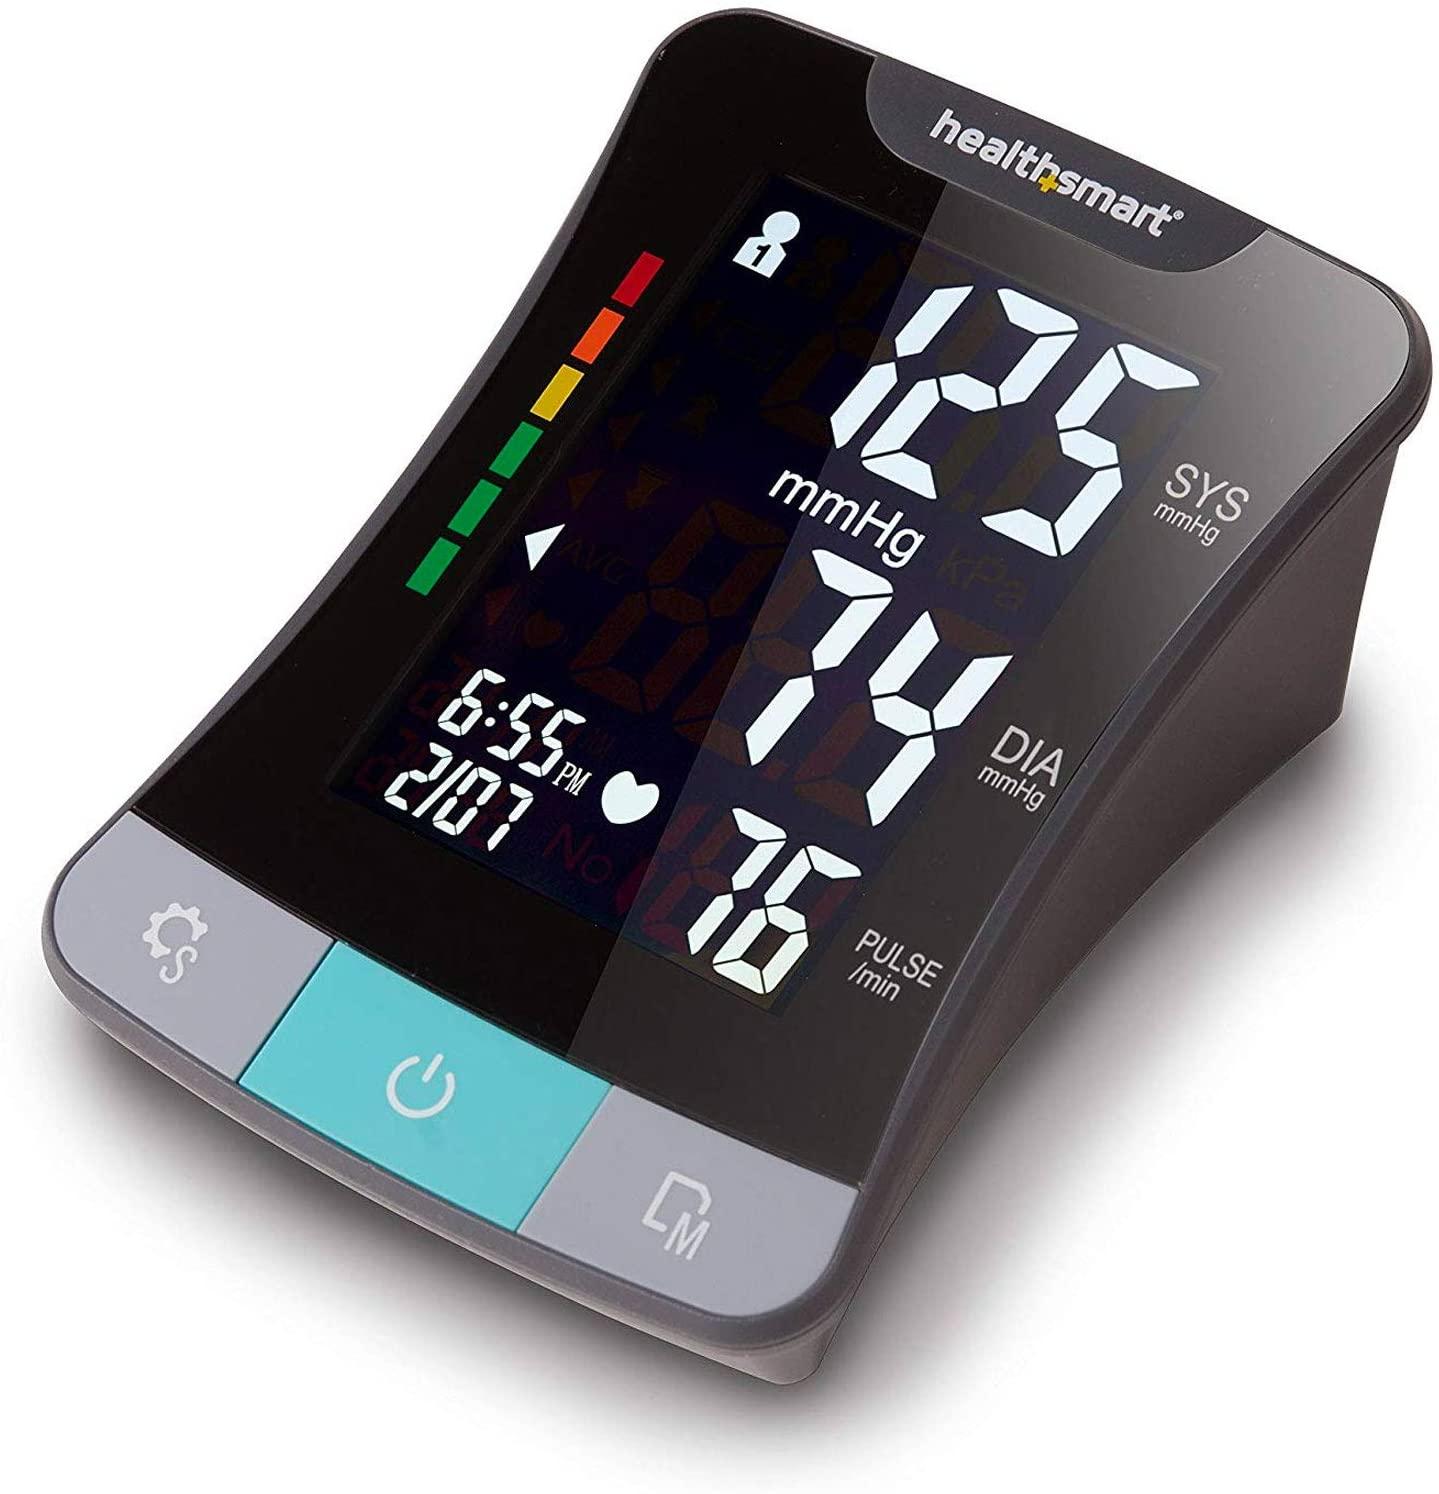 HealthSmart Digital Blood Pressure Monitor for Upper Arm with Clinically Accurate Talking LCD Screen, Includes Standard and Large Size Cuff, Black